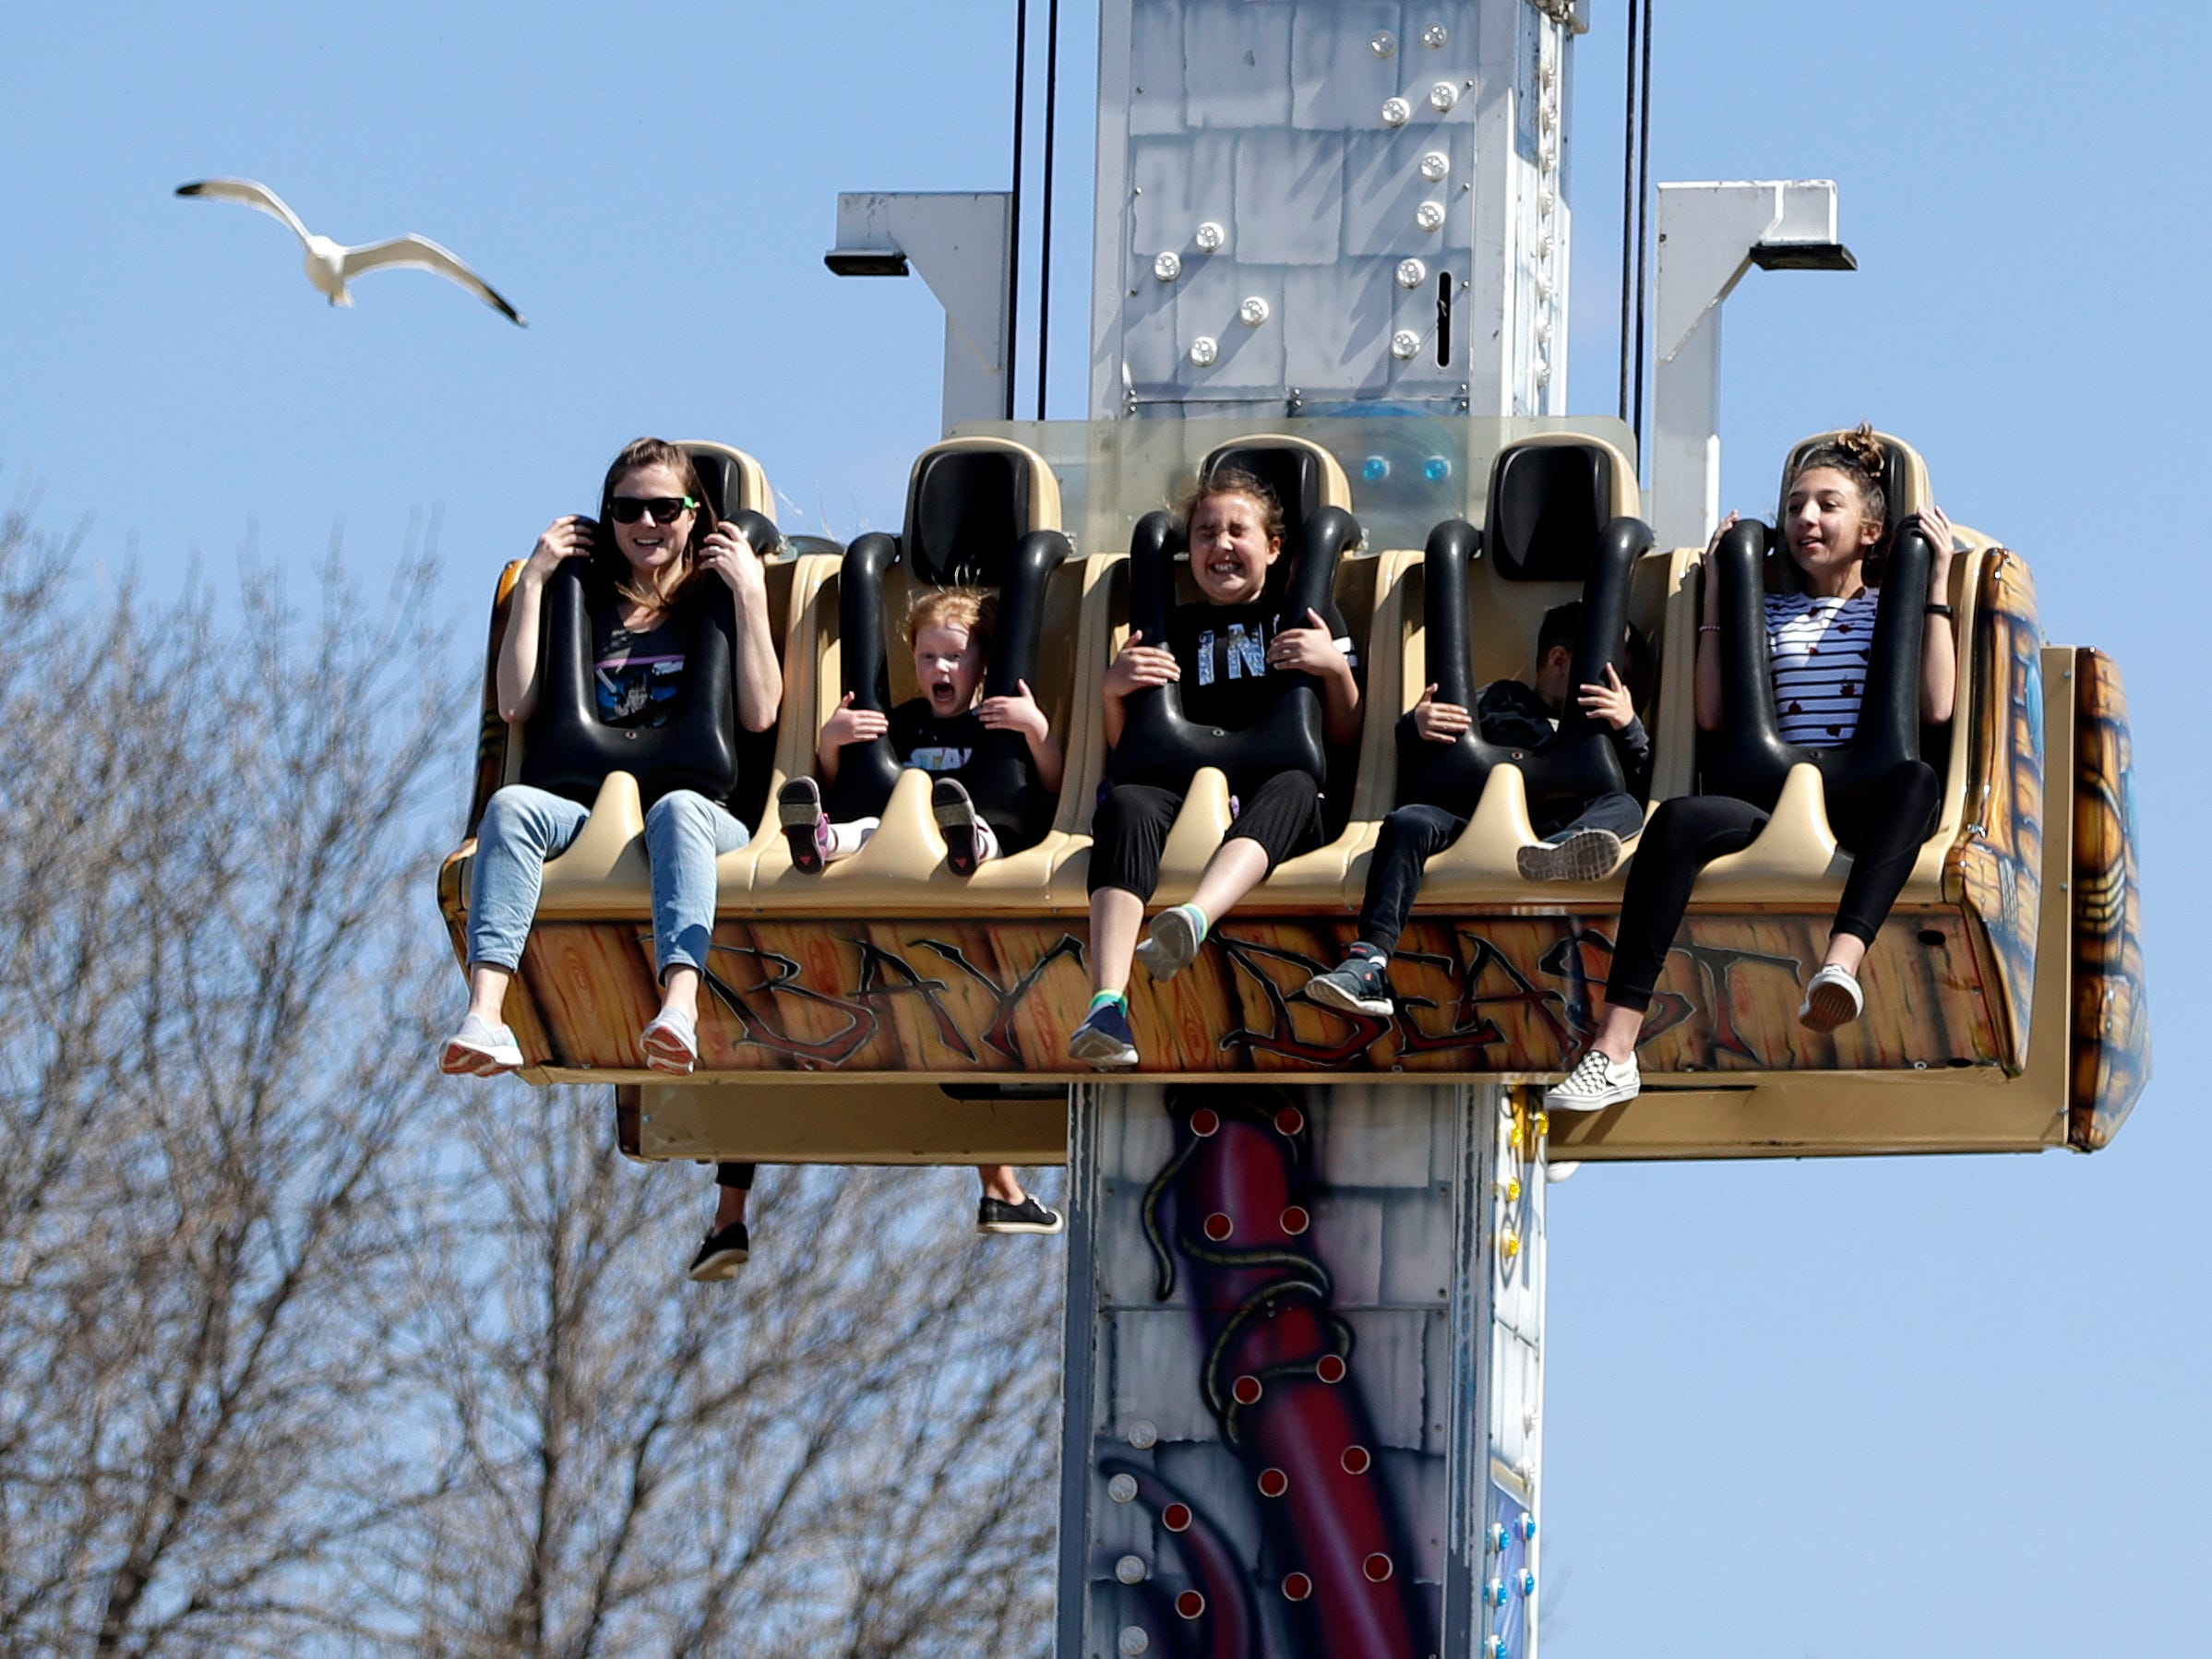 Riders brace themselves as they drop from the top of Bay Beast on May 4, 2019, the first day of the 2019 season at Bay Beach Amusement Park in Green Bay, Wis. Sarah Kloepping/USA TODAY NETWORK-Wisconsin